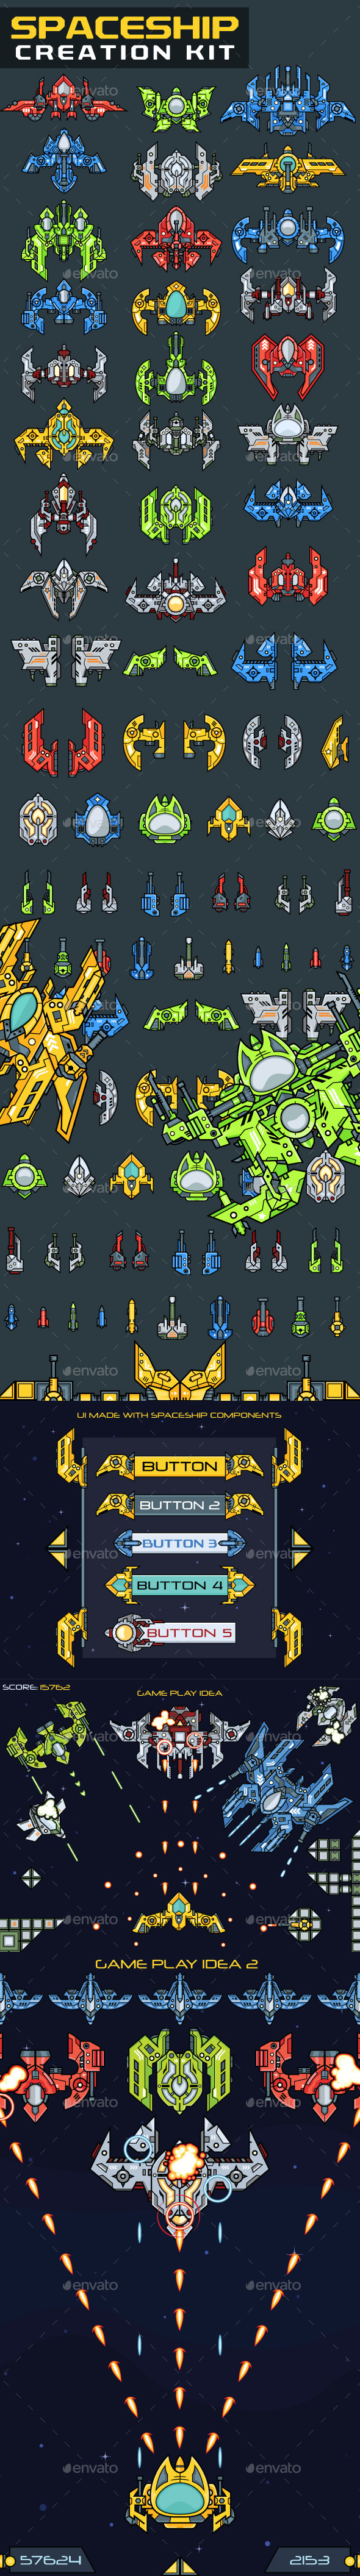 GraphicRiver Spaceship Creation Kit 10766100